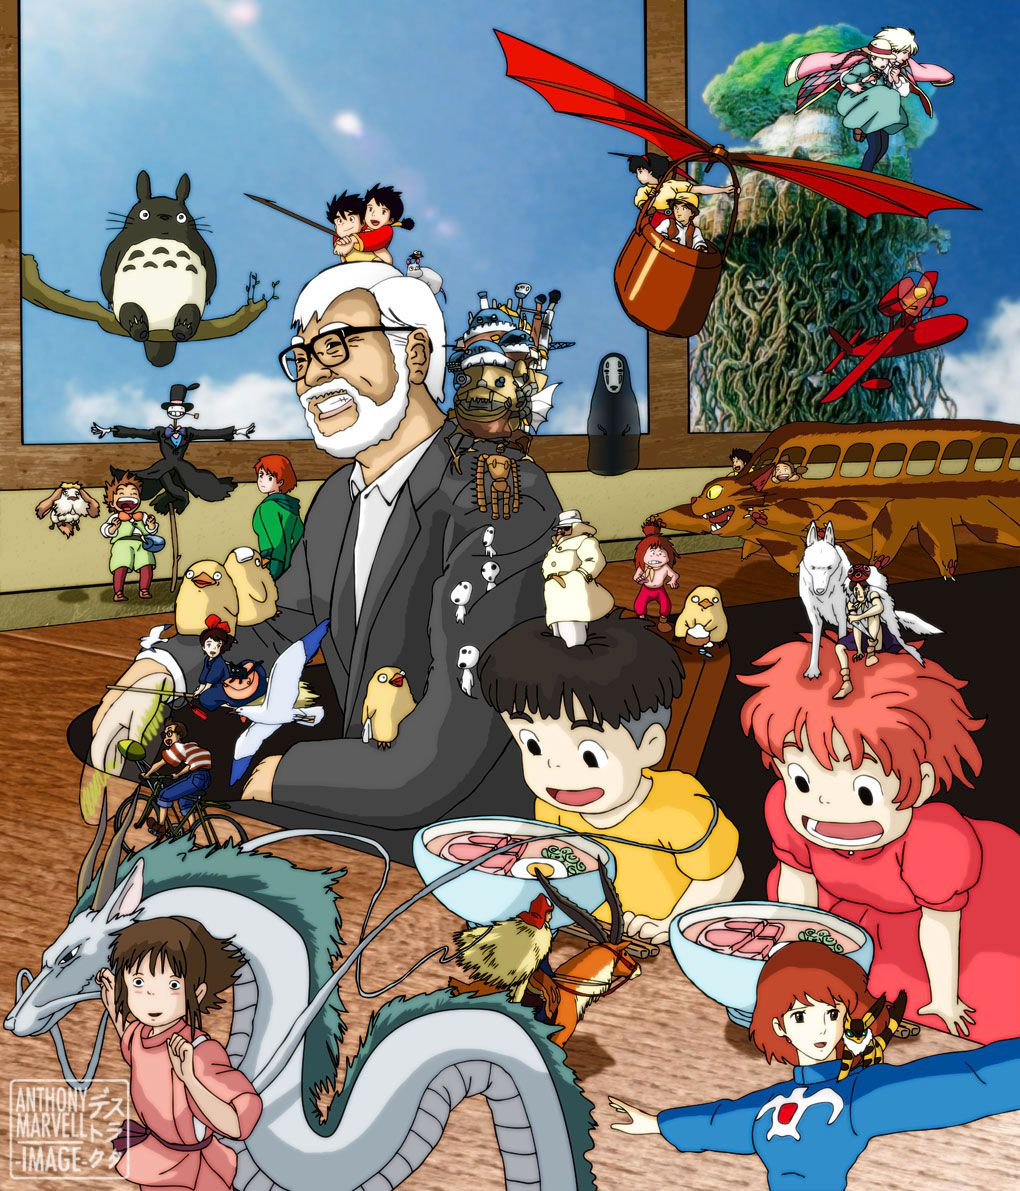 The Ghibli Museum Enter The Fantastical World Of Hayao Miyazaki ジブリ スタジオ ジブリ ジブリ イラスト